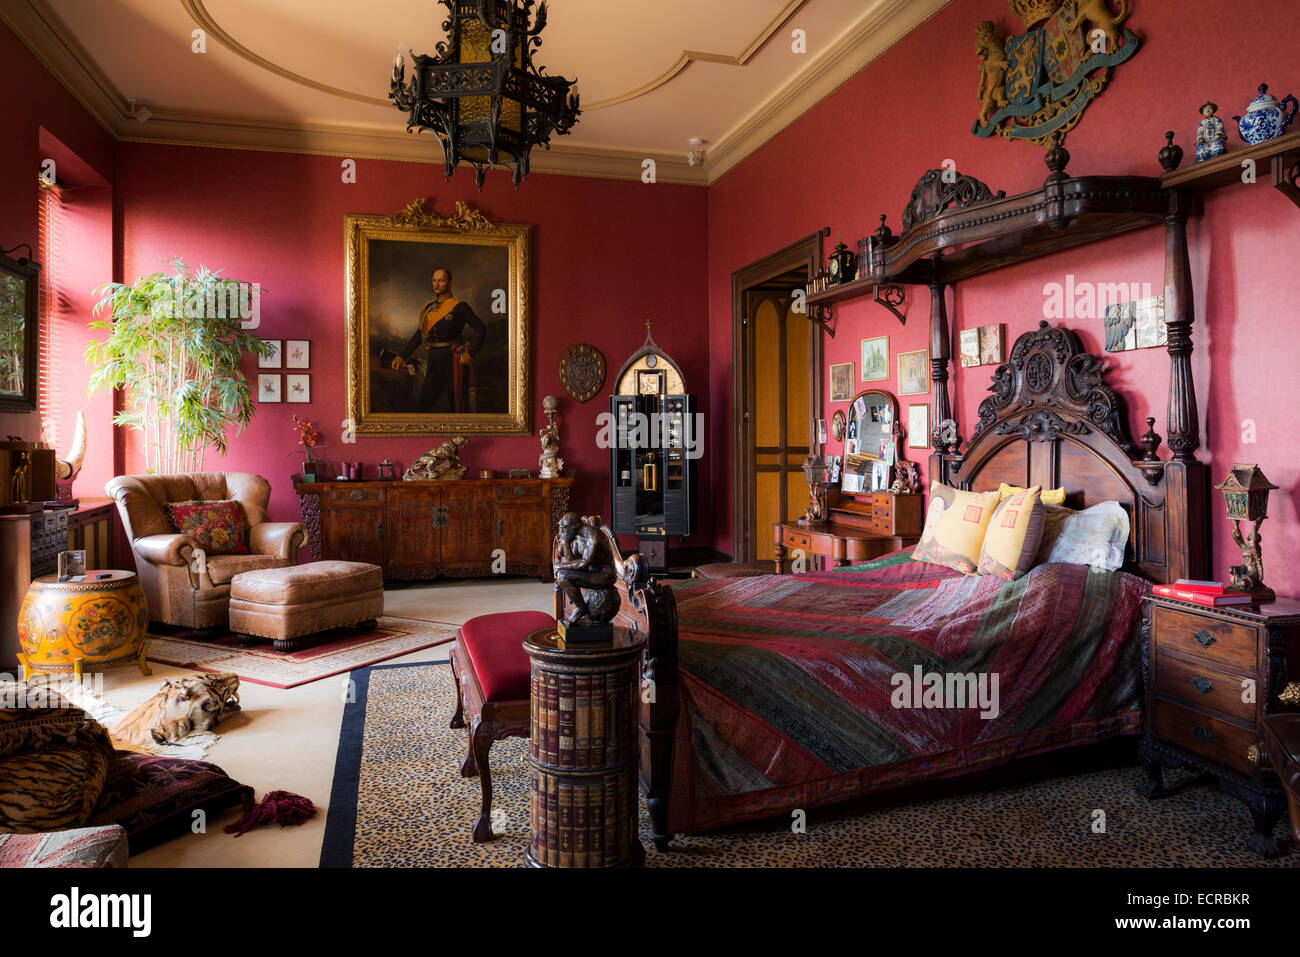 ornate carved bed with coronet in large red bedroom with leopard print carpet wall mounted coat of arms and antique furniture - Ornate Bedroom Furniture